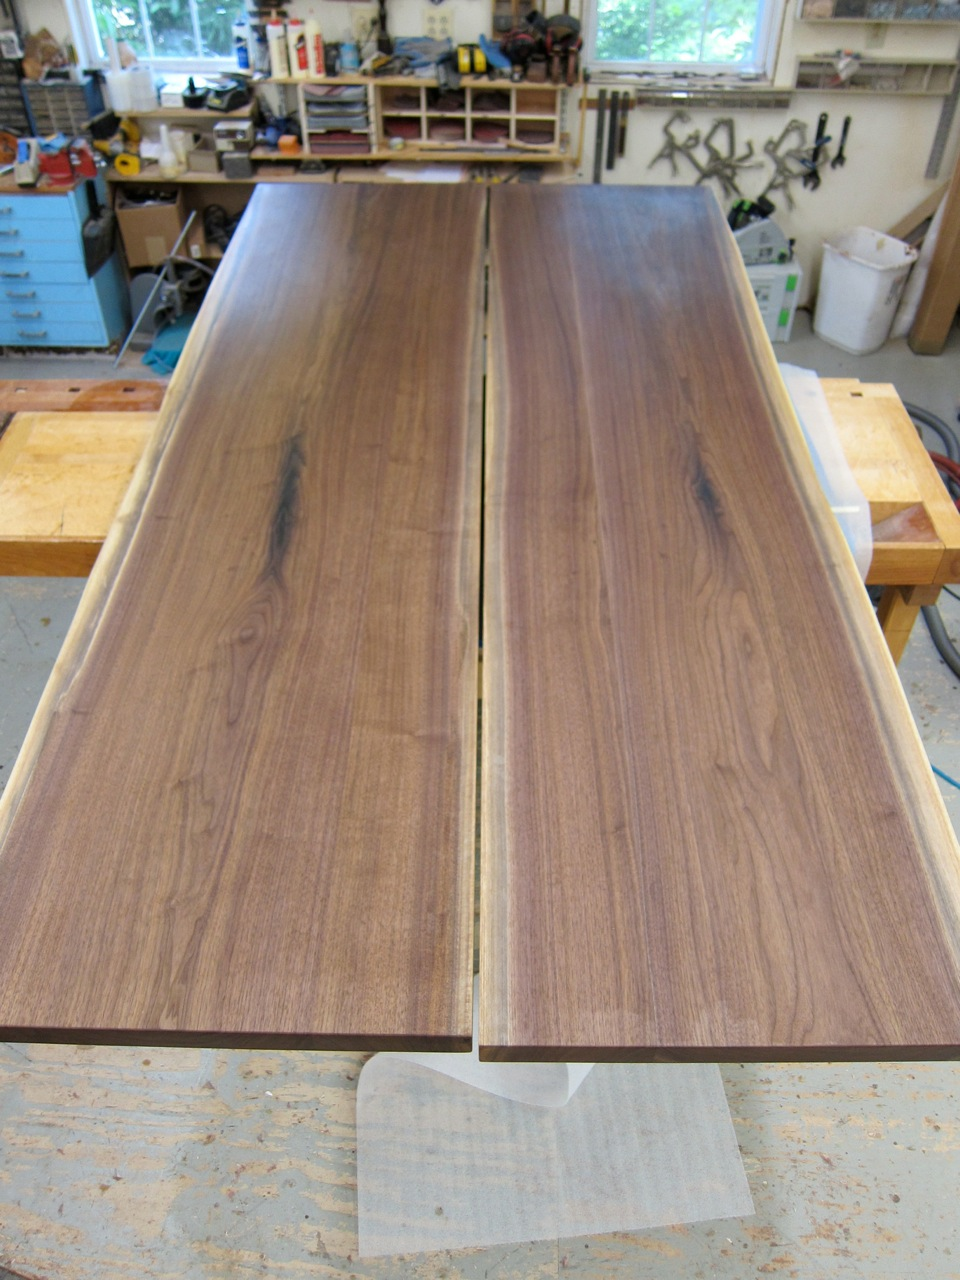 Eastern Black Walnut book-matched slab tabletop